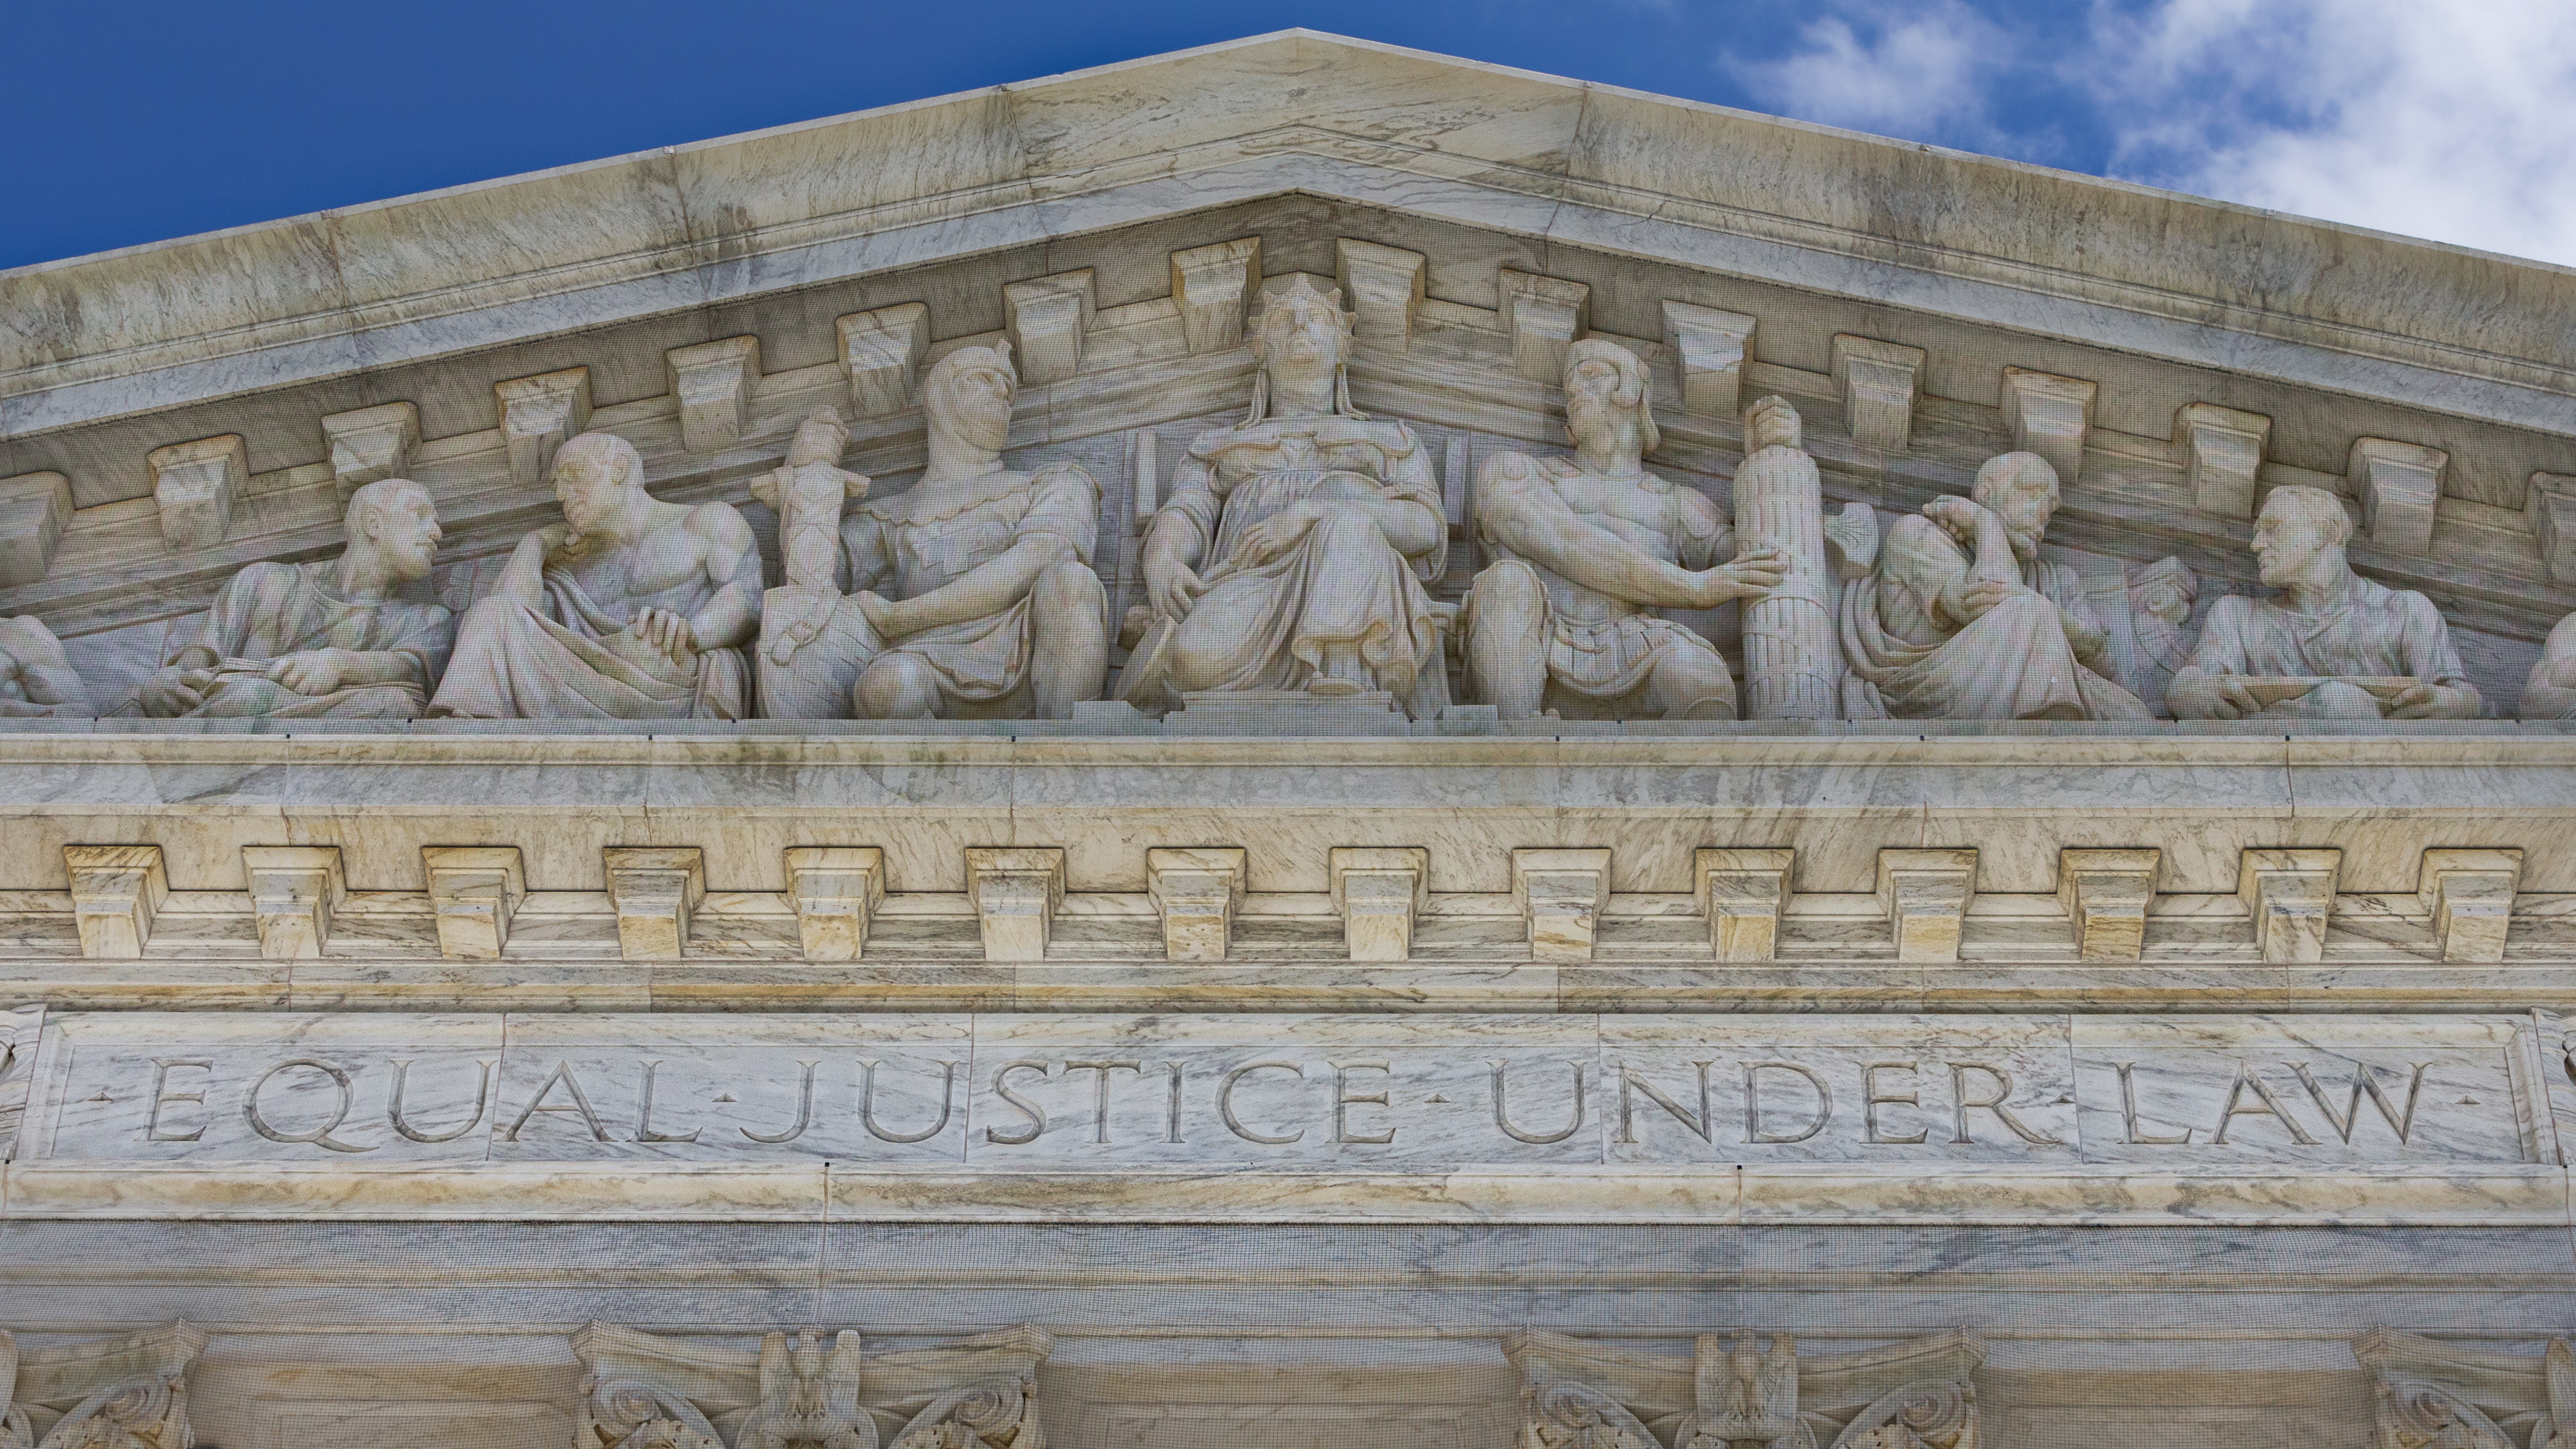 Equal Justice Under Law inscribed on the facade of the Supreme Court Building, Washington, D.C..